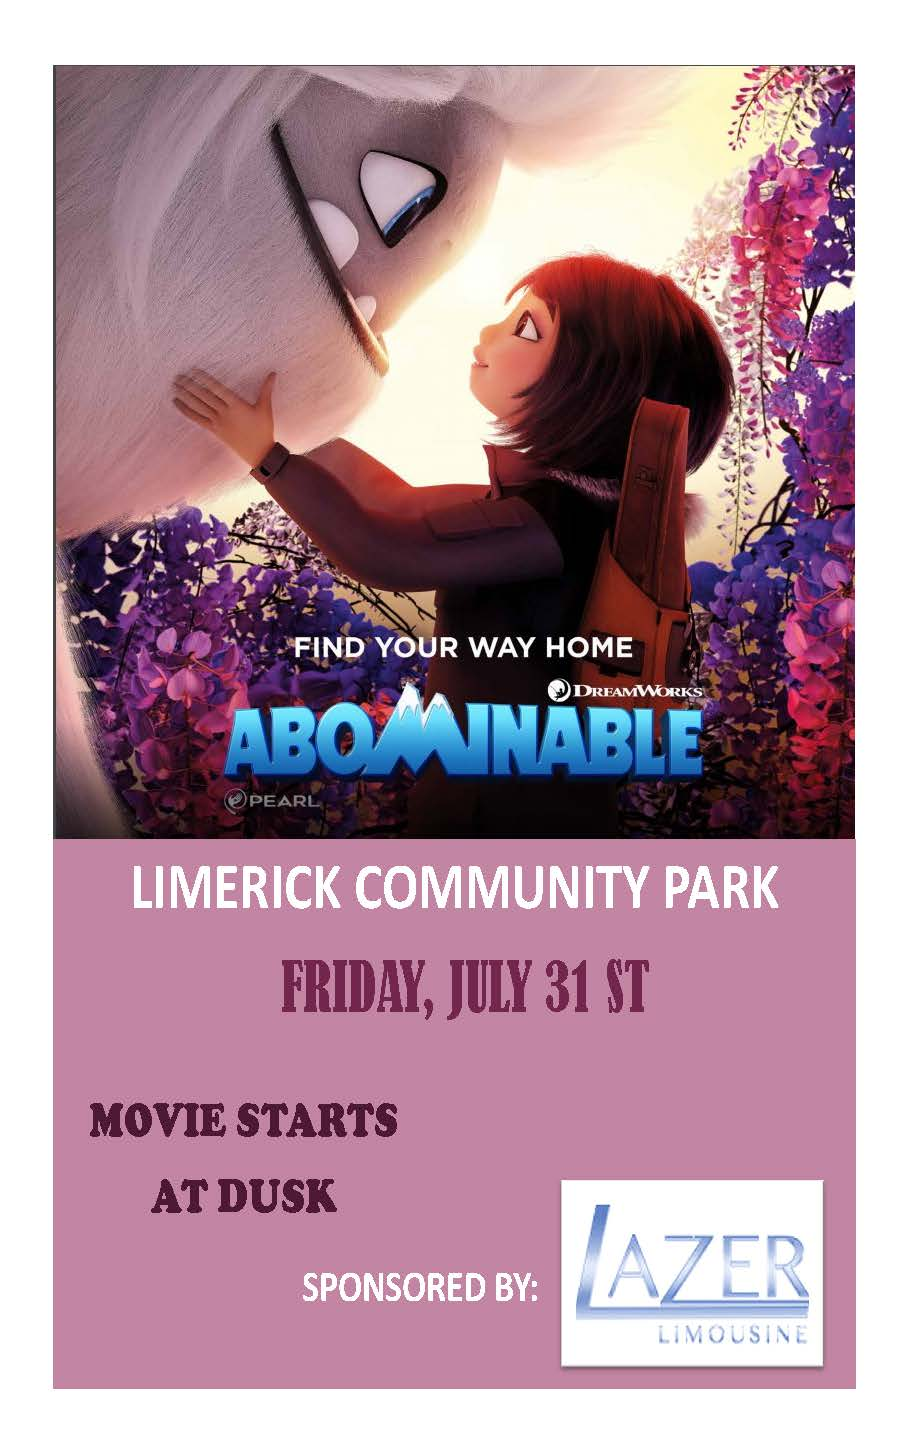 JULY 31ST MOVIE